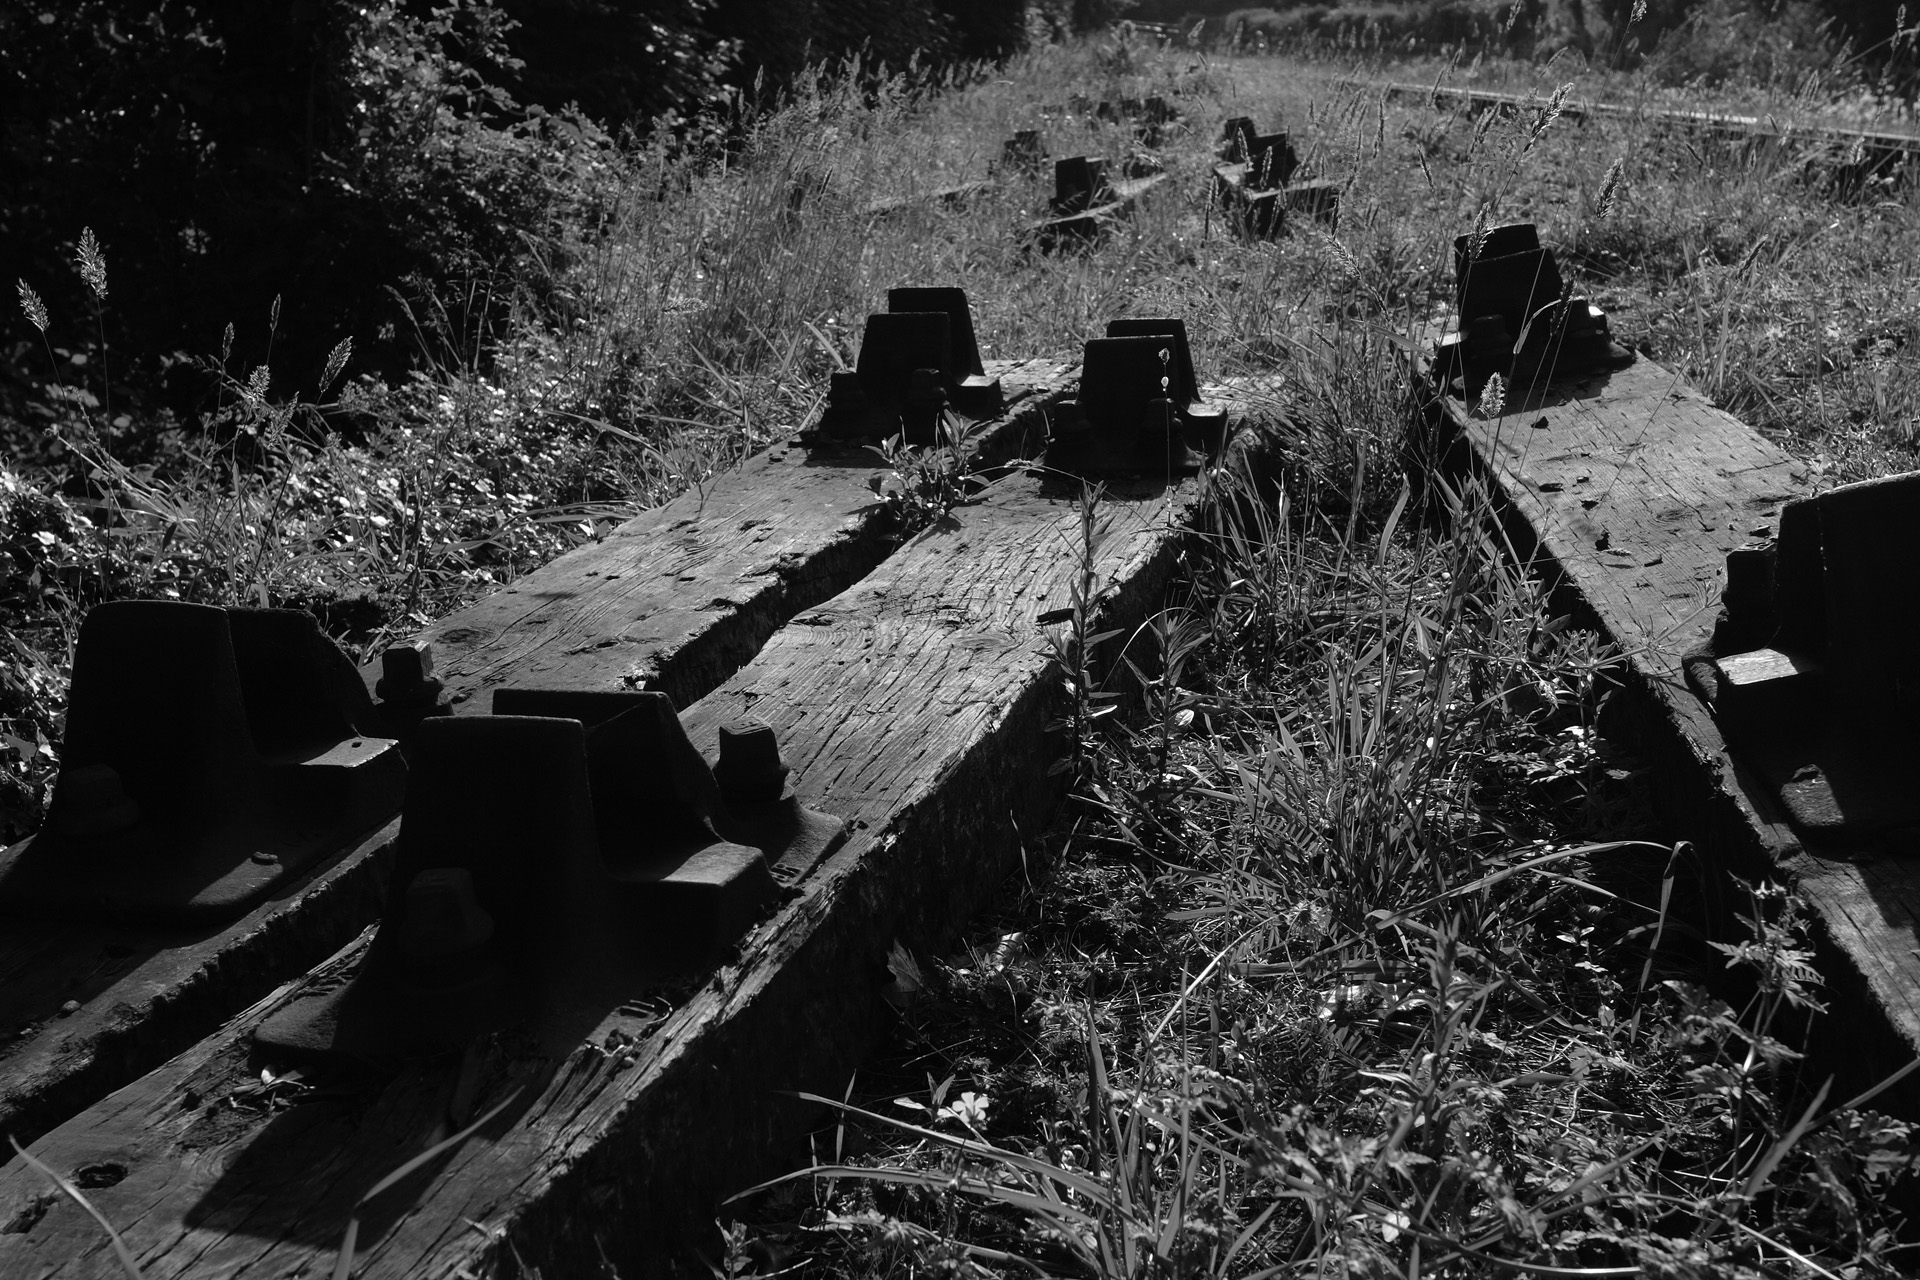 Old railway sleepers monochrome